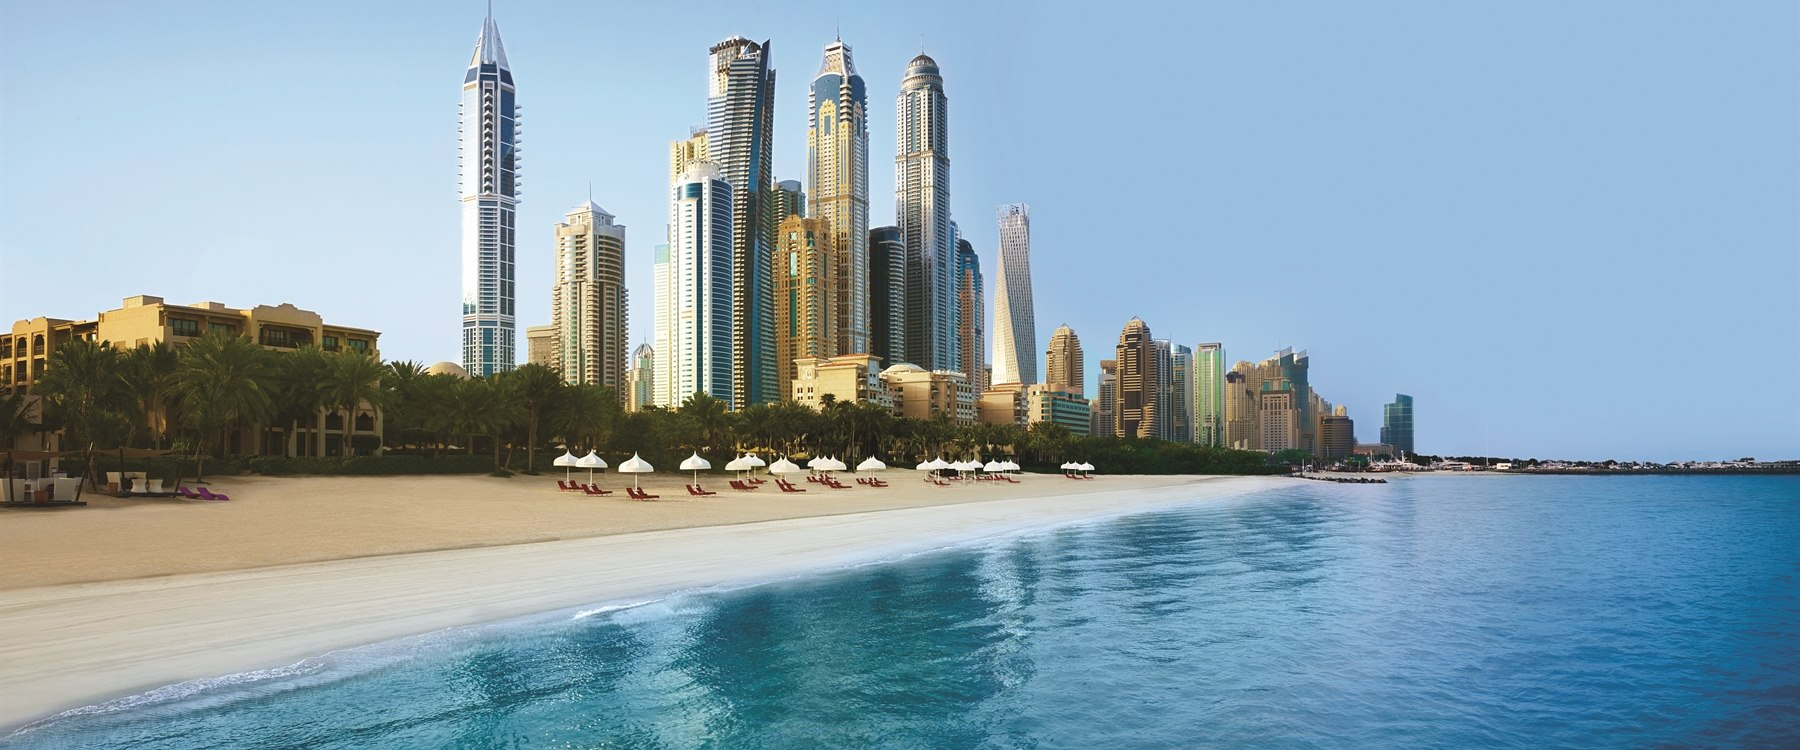 The beach at One&Only Royal Mirage - Arabian Court, Dubai